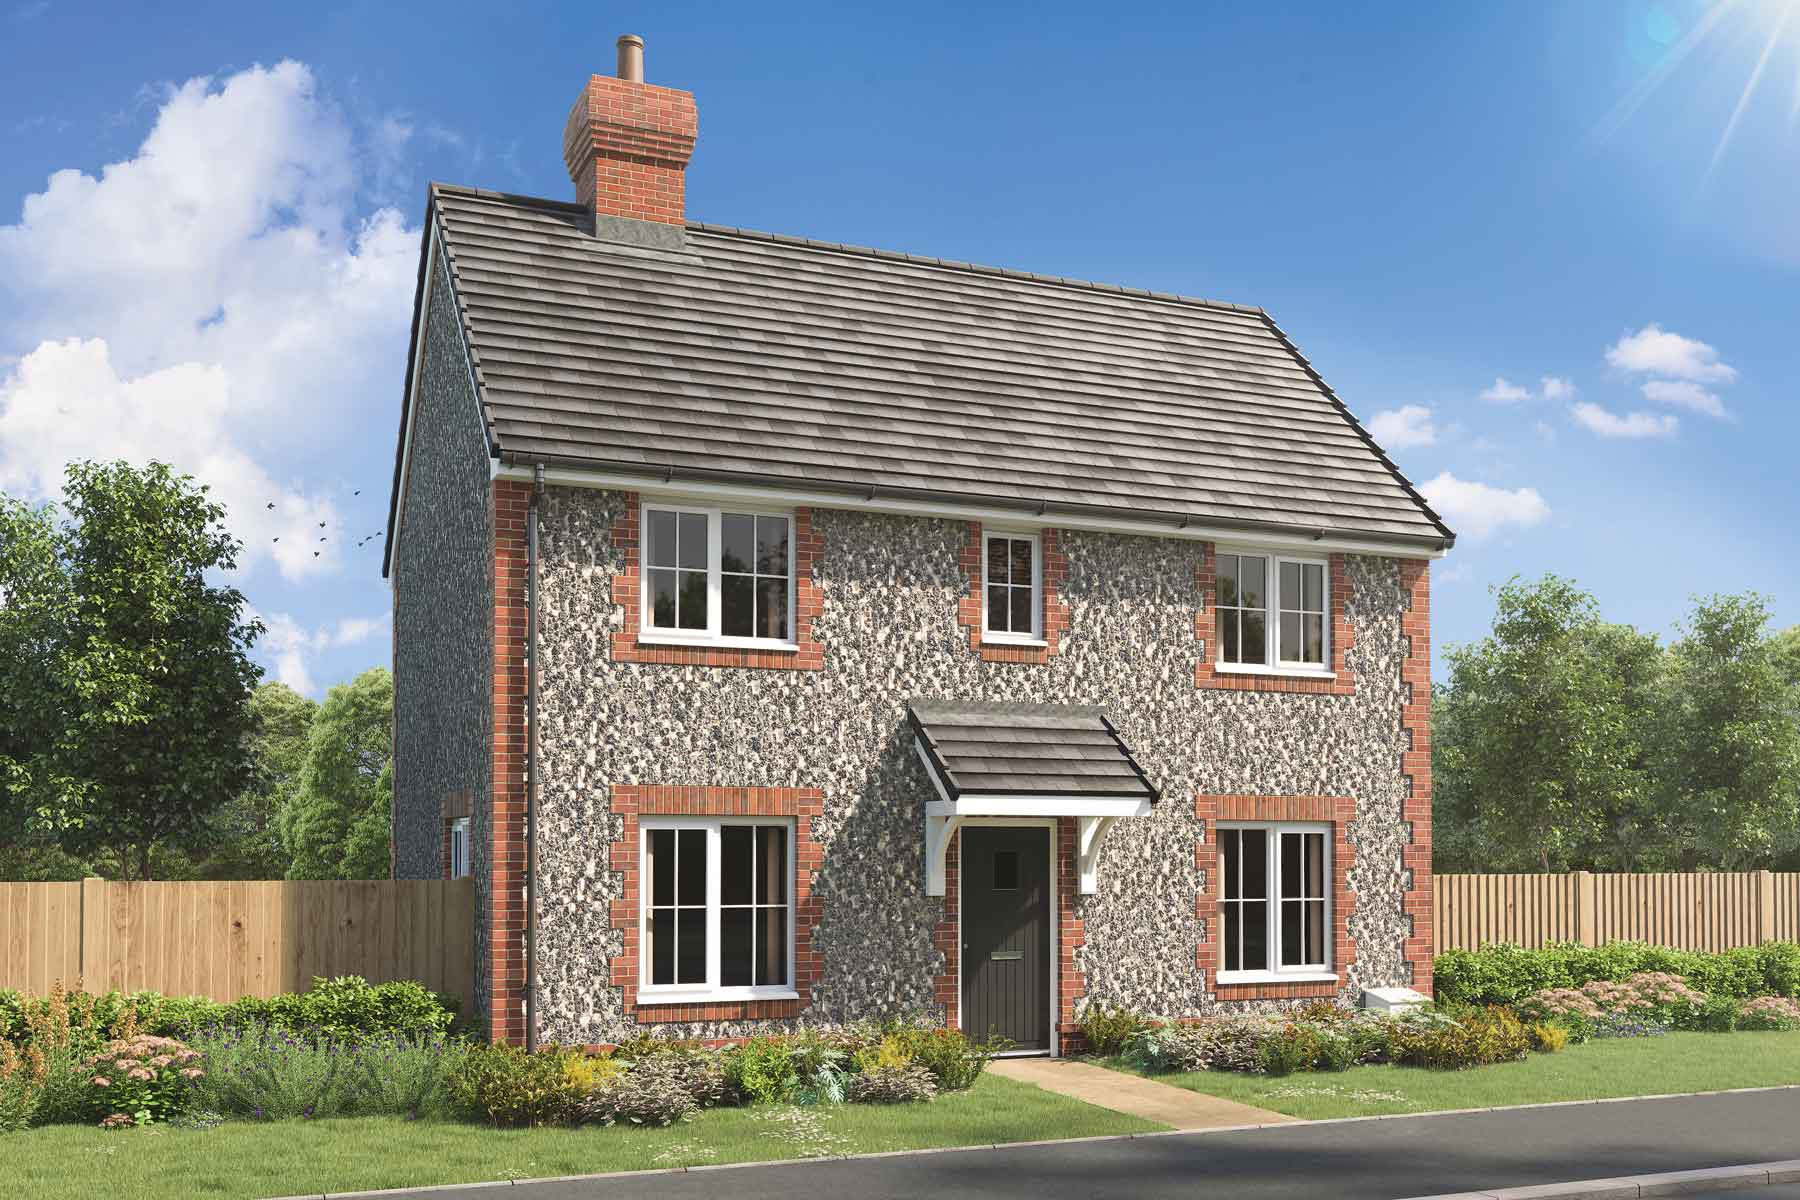 Artist's impression of a typical Yewdale home